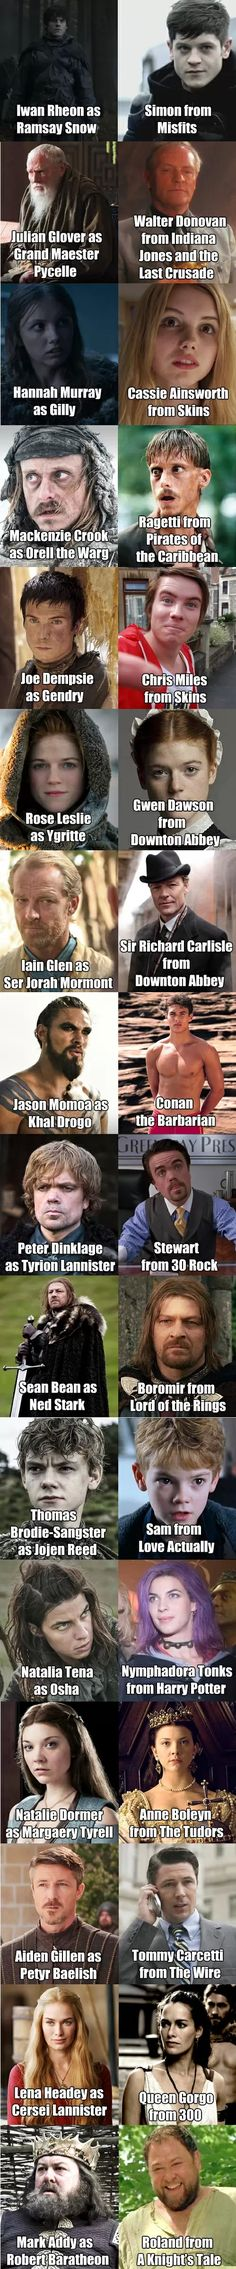 16 Game of Thrones Characters On Other Shows.